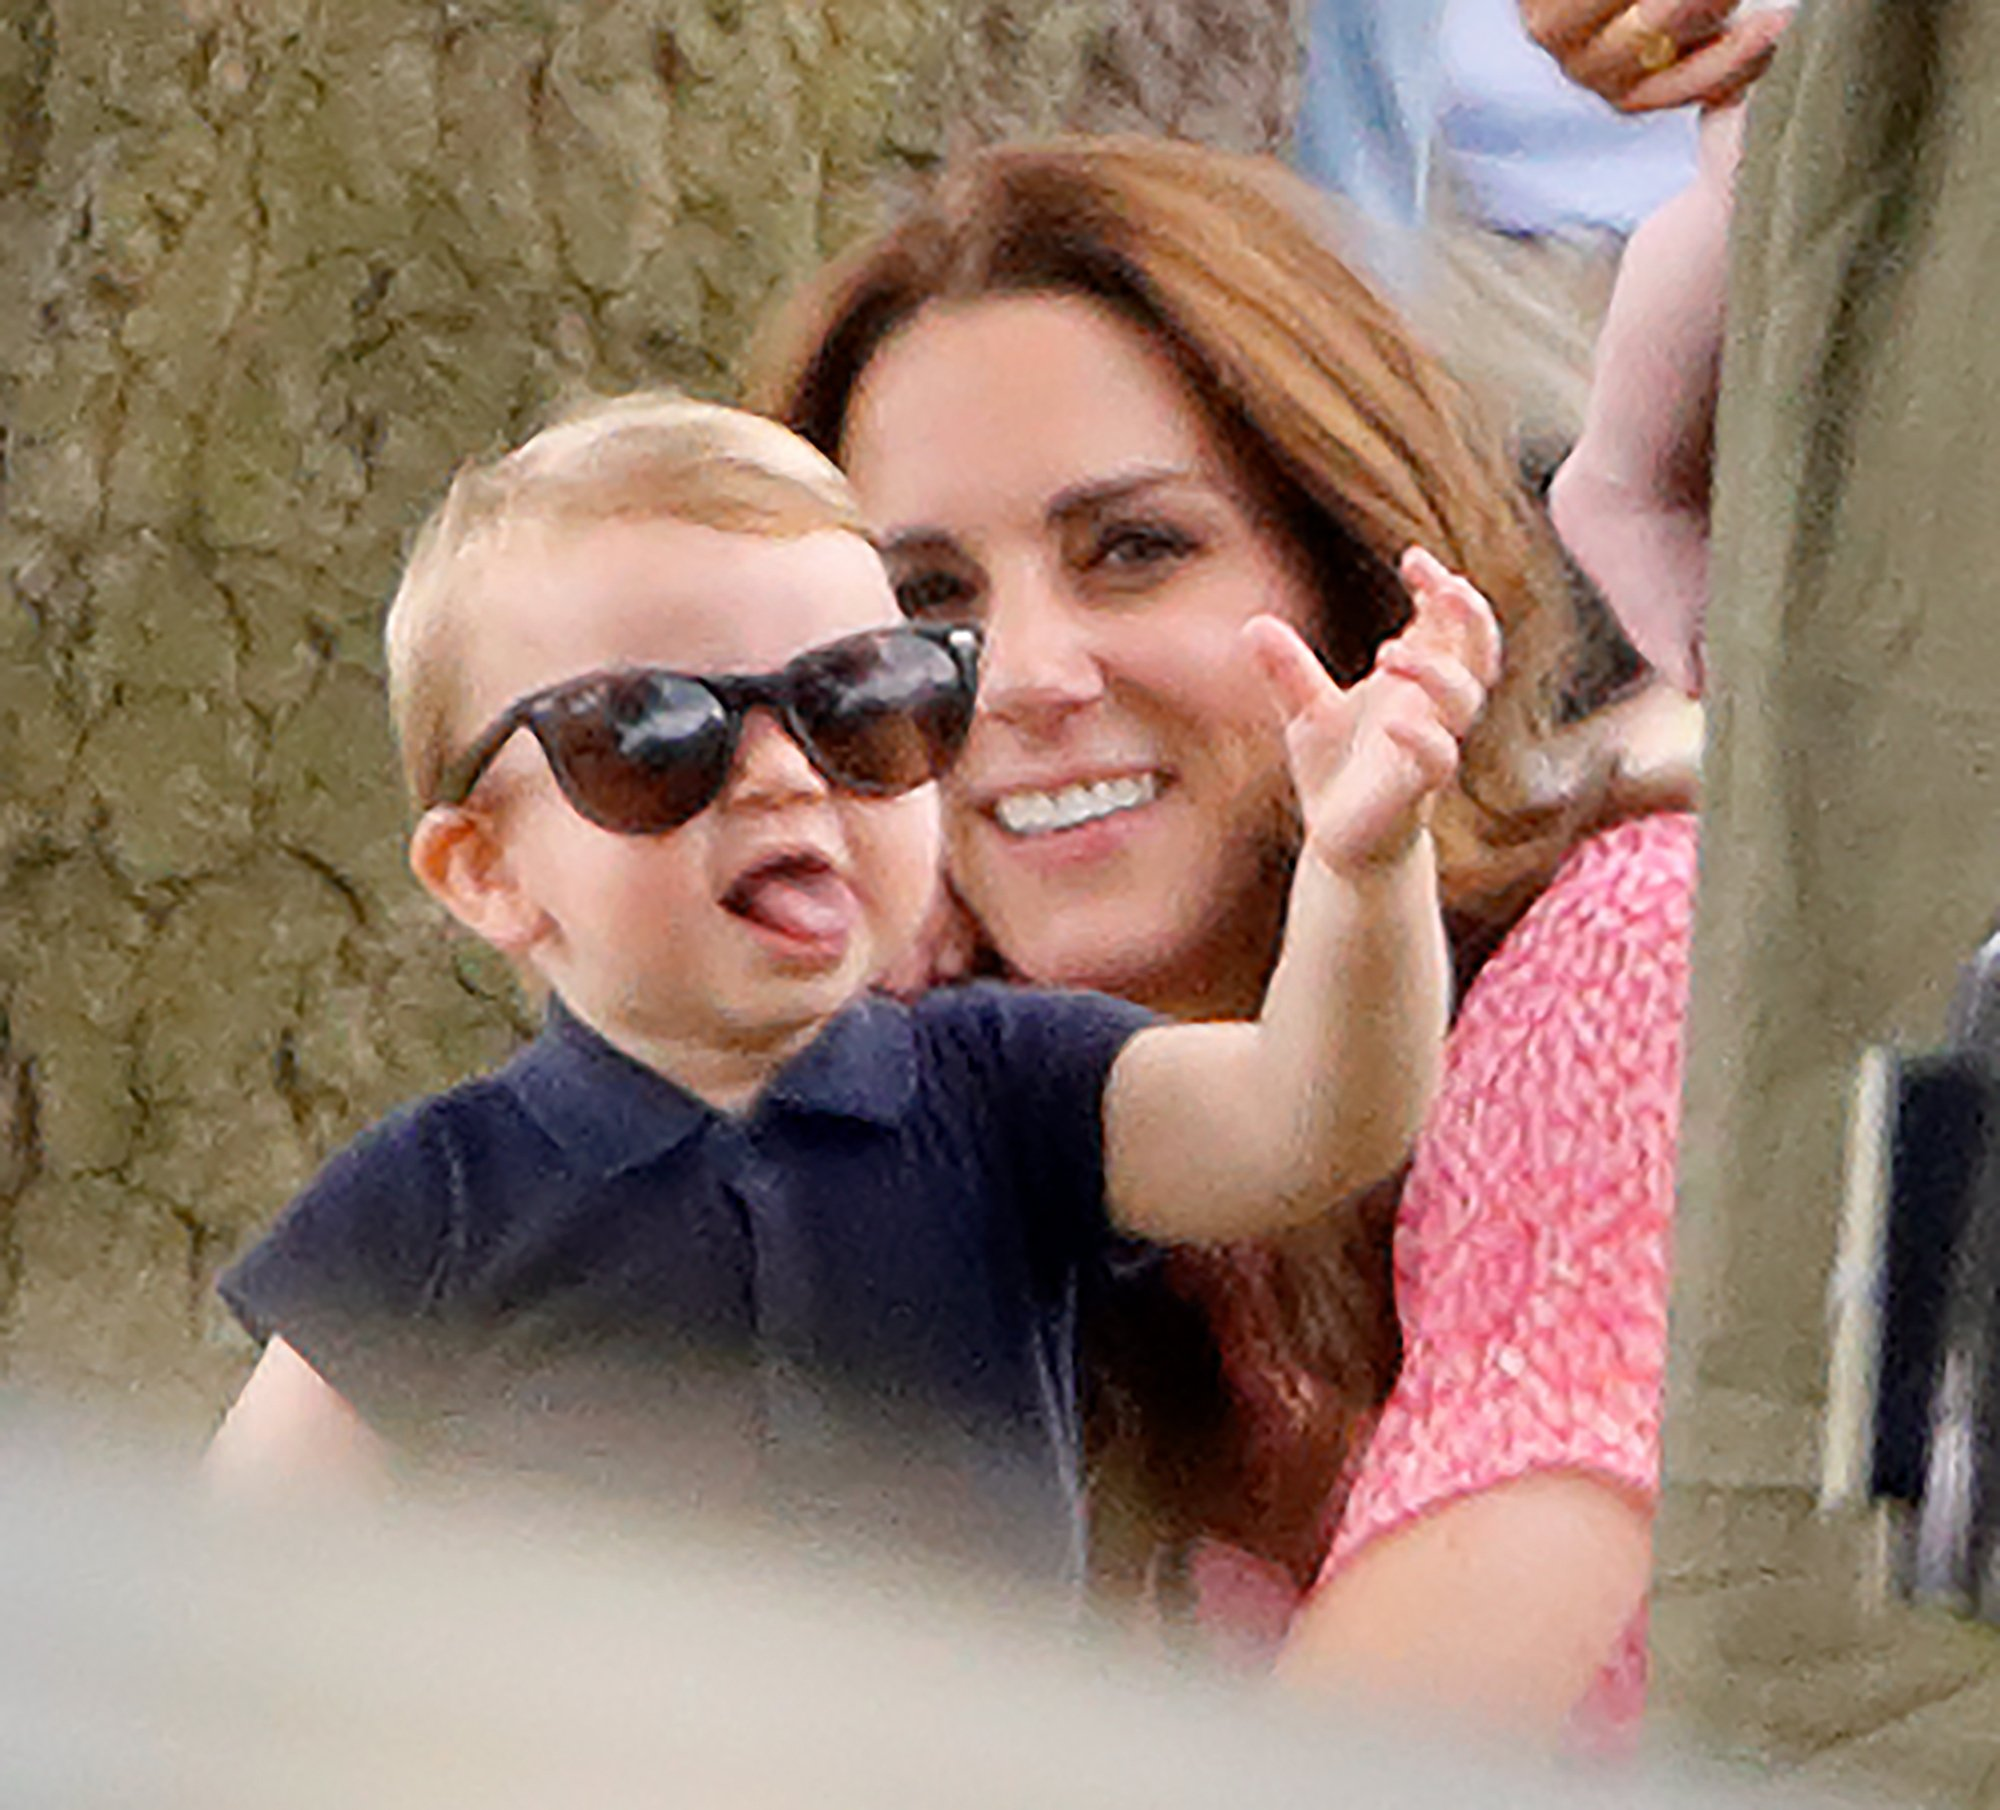 Prince Louis wears his mother's sunglasses at a charity polo match in July 2019 | Photo: Getty Images